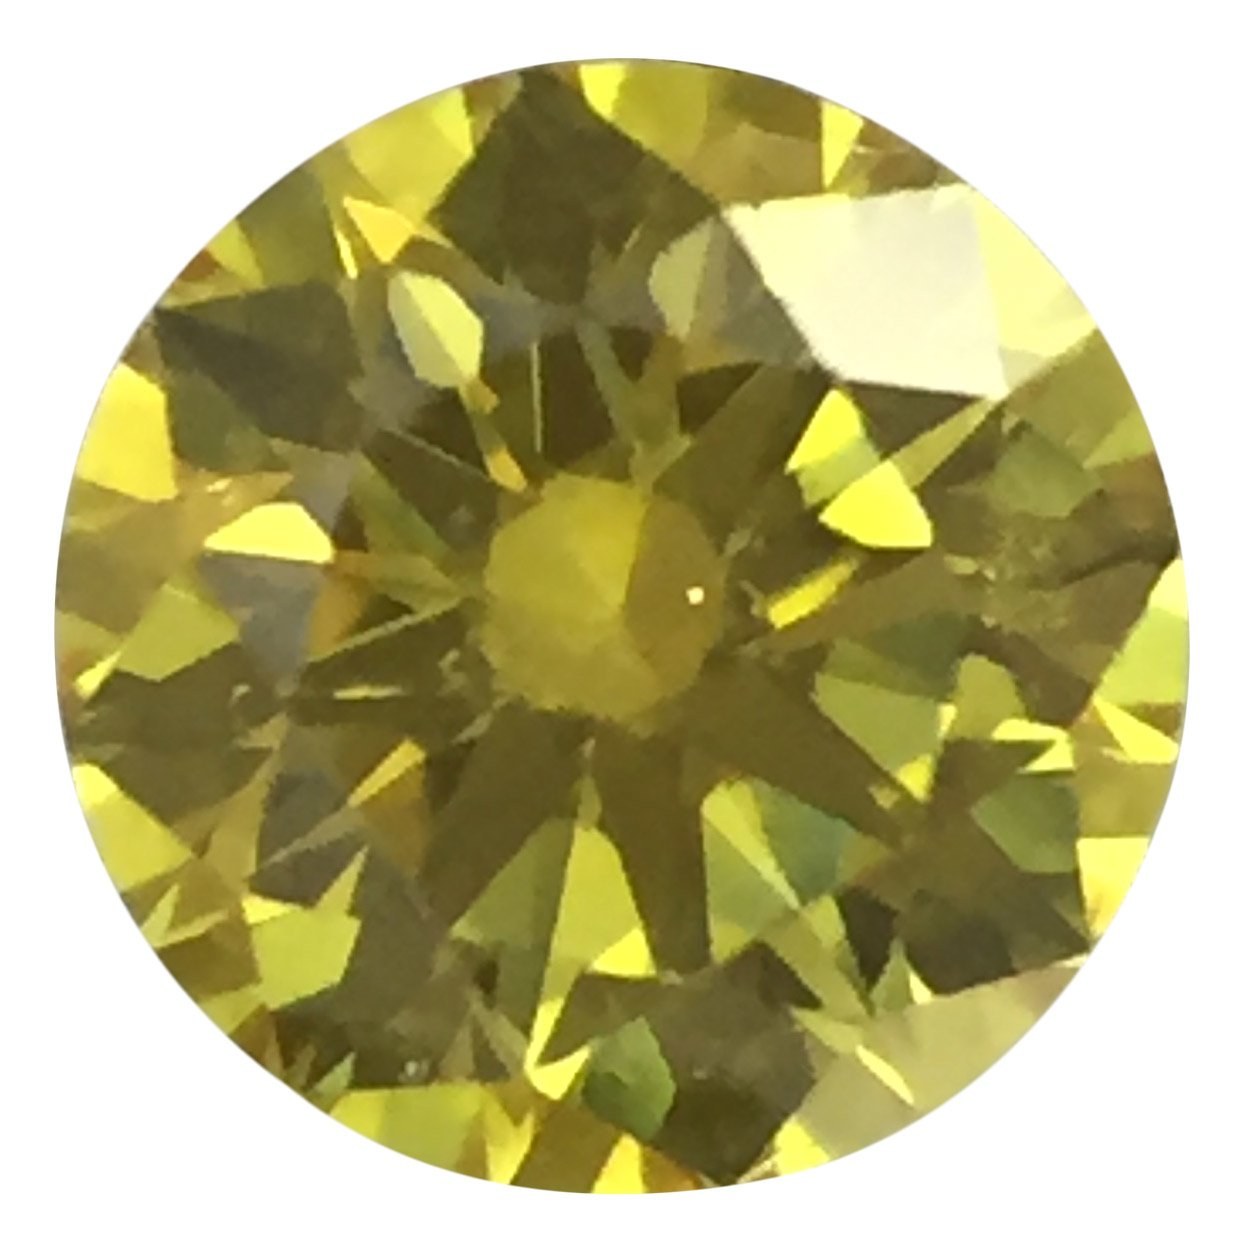 Fancy Vivid Yellow Diamonds in Round Brilliant Cut